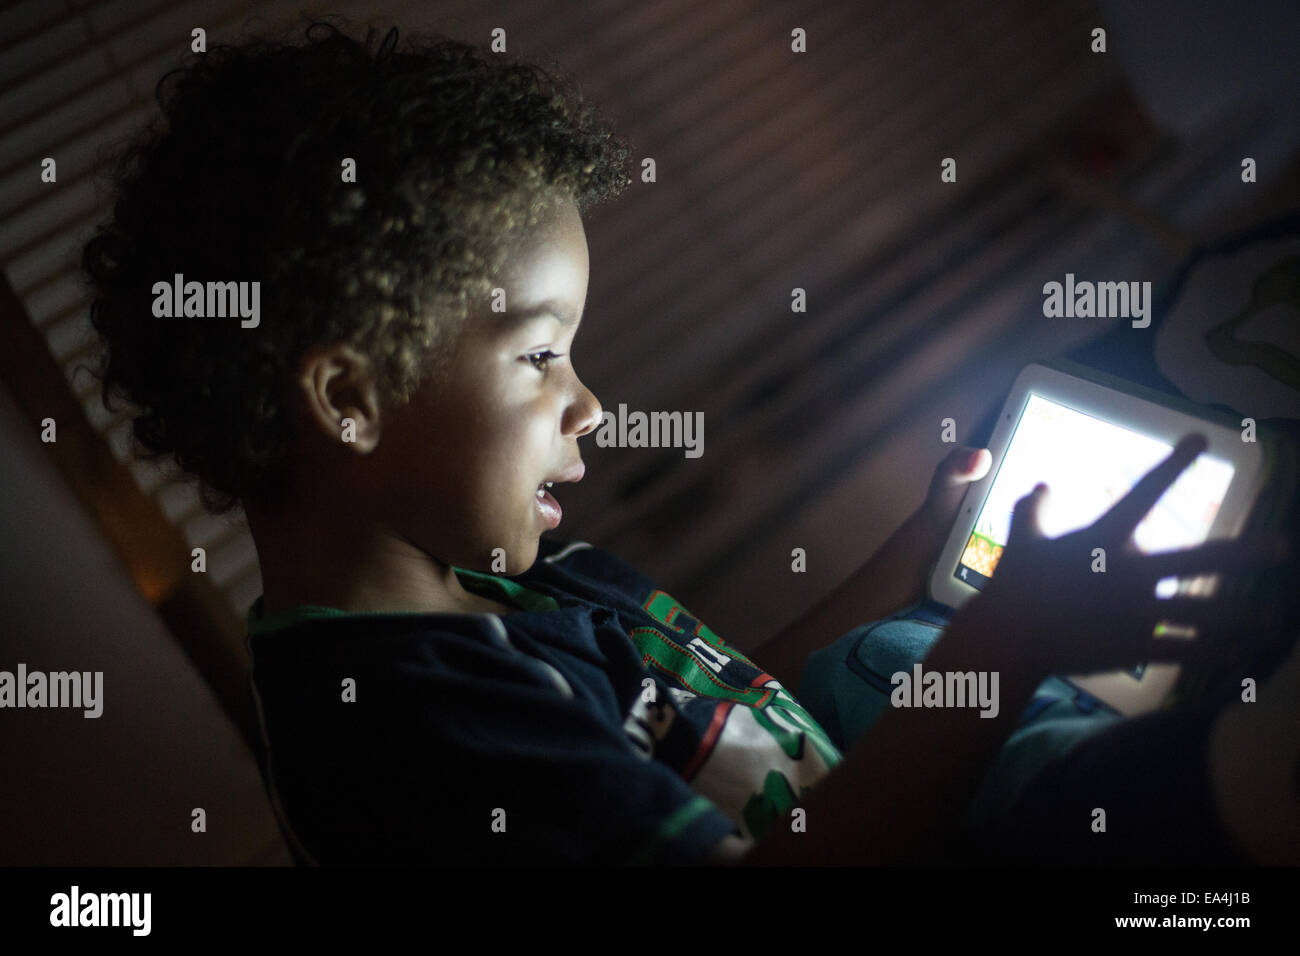 mixed race child playing games and learning on an ipad type device with light lighting up their faces in the dark. - Stock Image